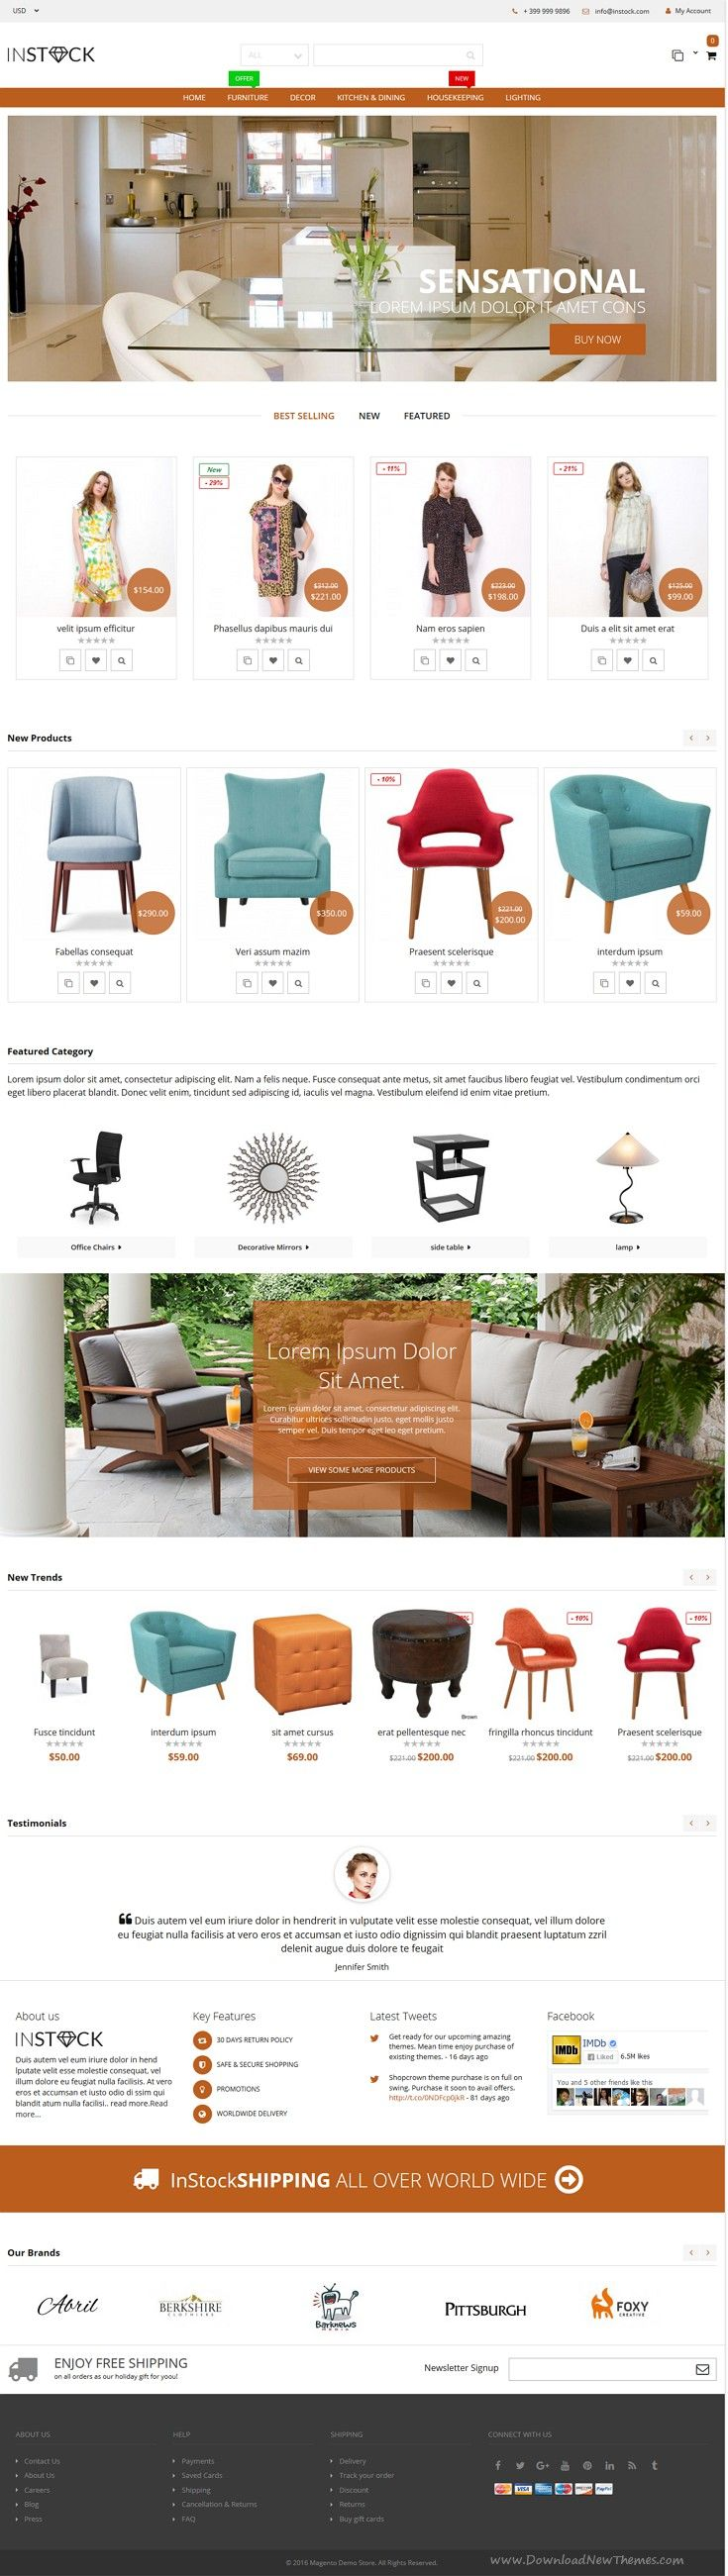 Instock is a premium responsive clean, modern and elegant design magento theme for multipurpose eCommerce #website. #furniture #interior #decor #store Download Now!